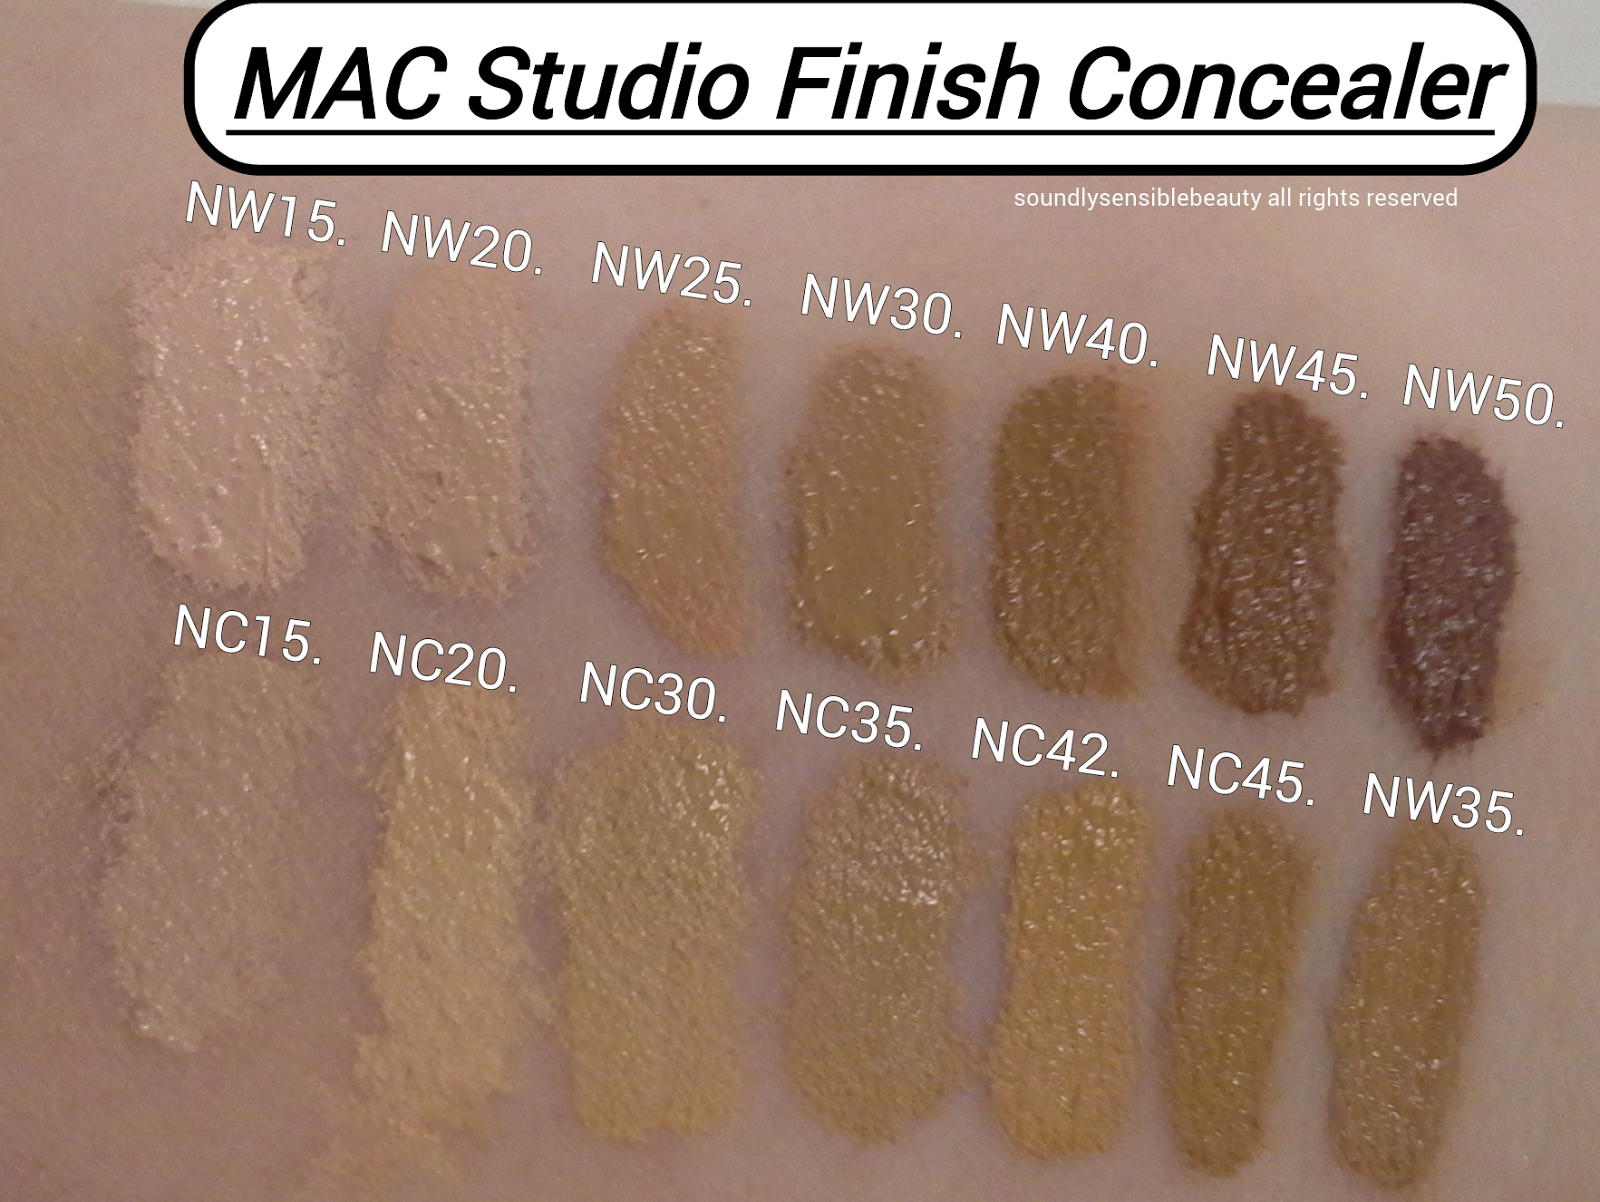 Studio Finish Concealer Duo by MAC #4